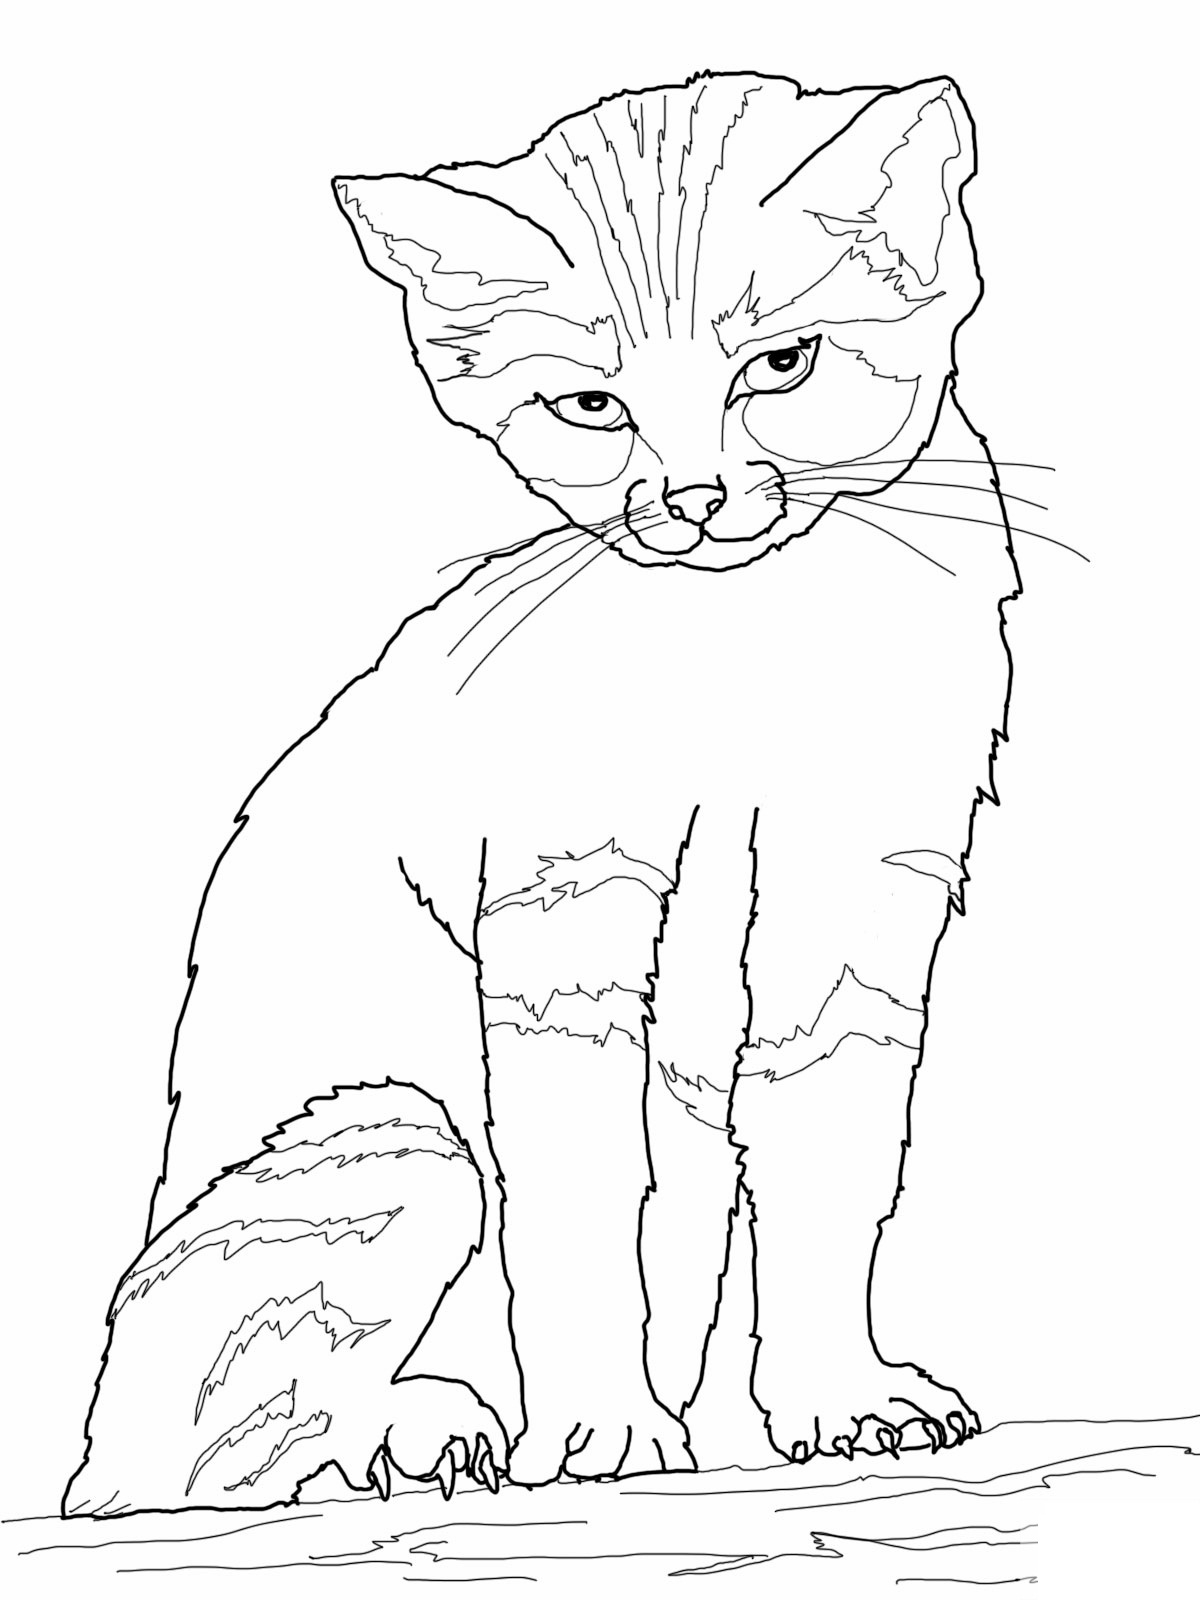 cat coloring pages - cat coloring pages